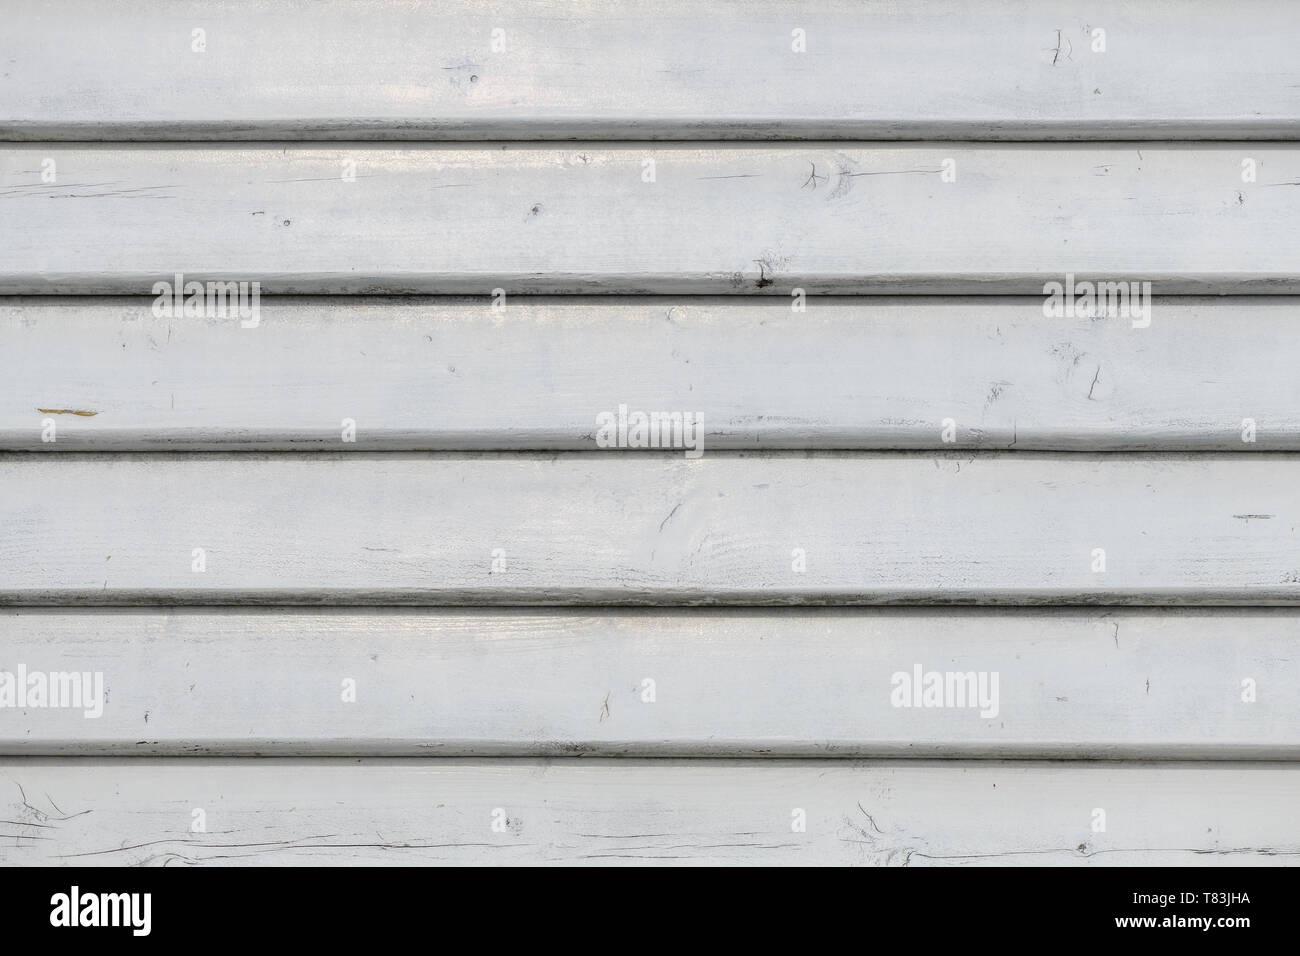 White vintage wooden boards in overlap cladding pattern, front view as copy space or graphic design background - Stock Image